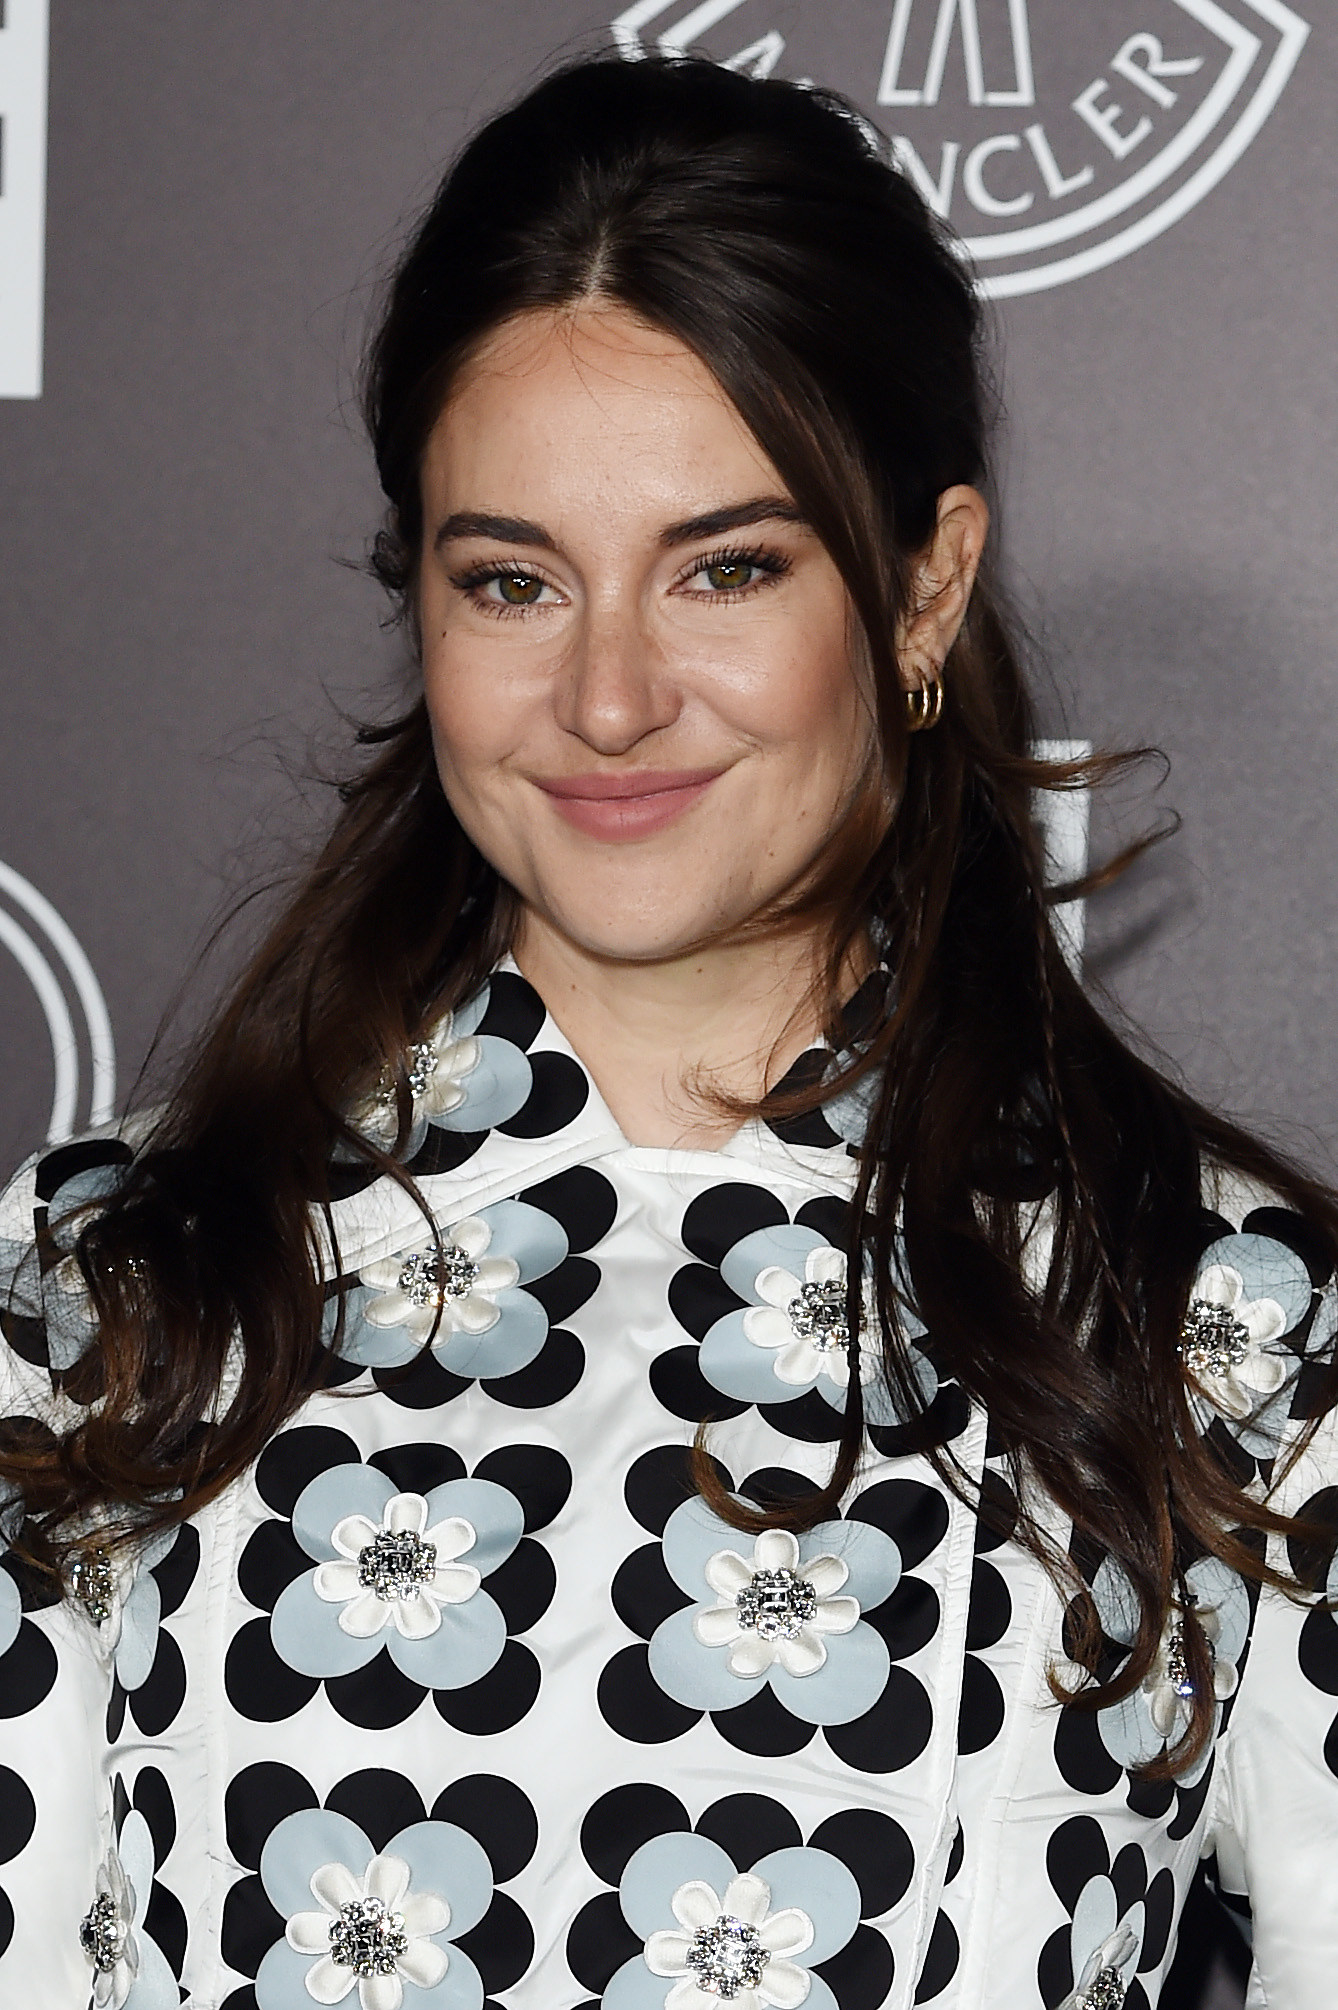 Shailene Woodley is photographed at an event in Milan, Italy